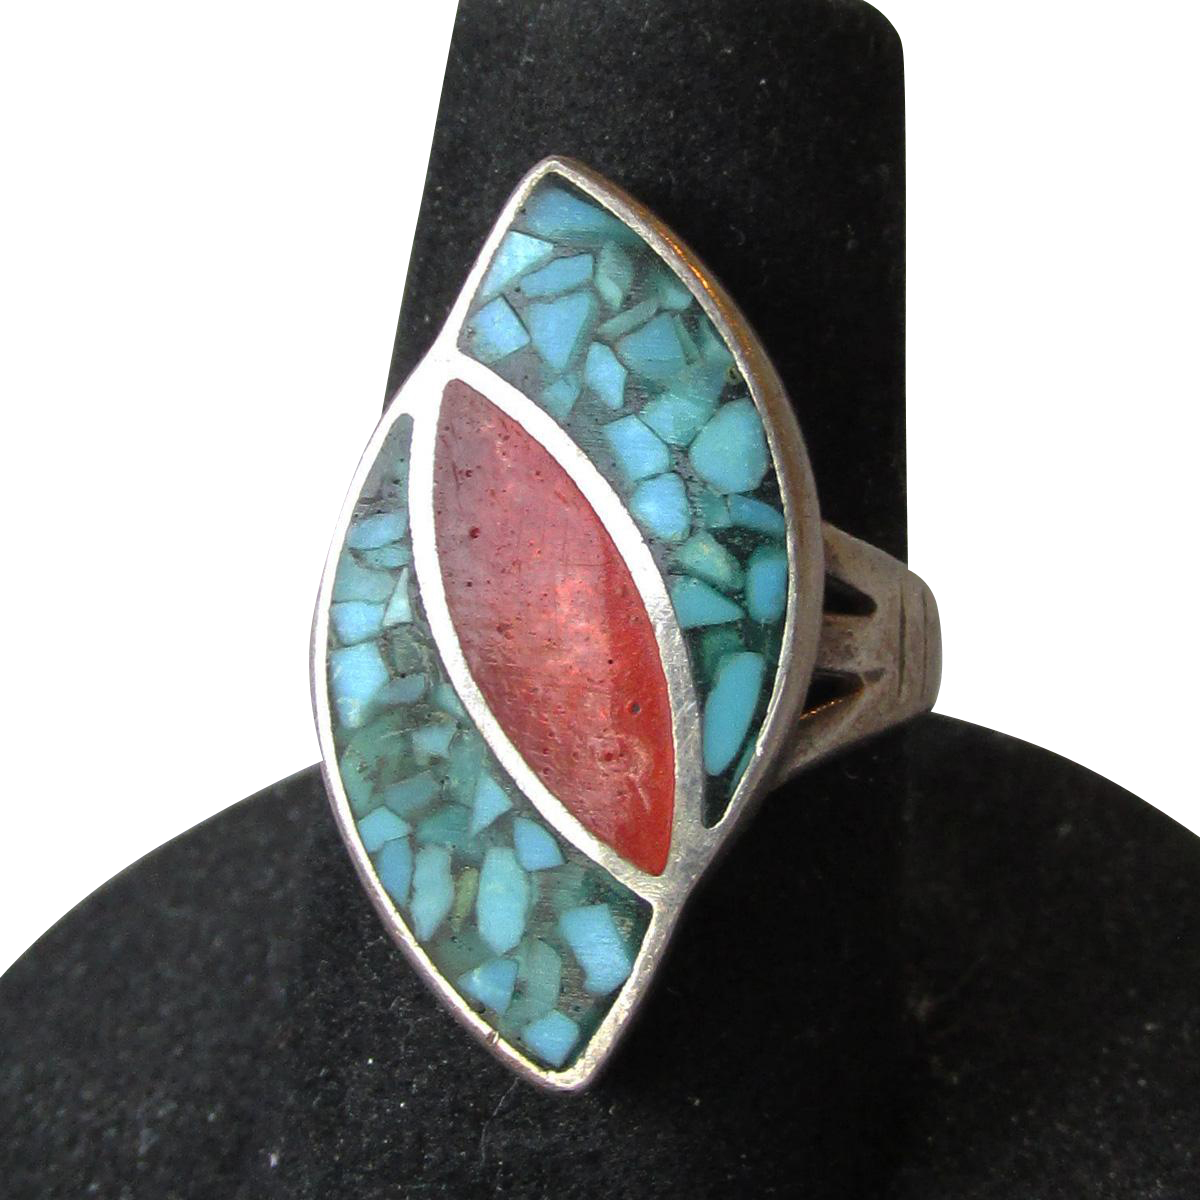 Native American Navajo Sterling Silver Inlaid Turquoise & Coral Ring, Size 5